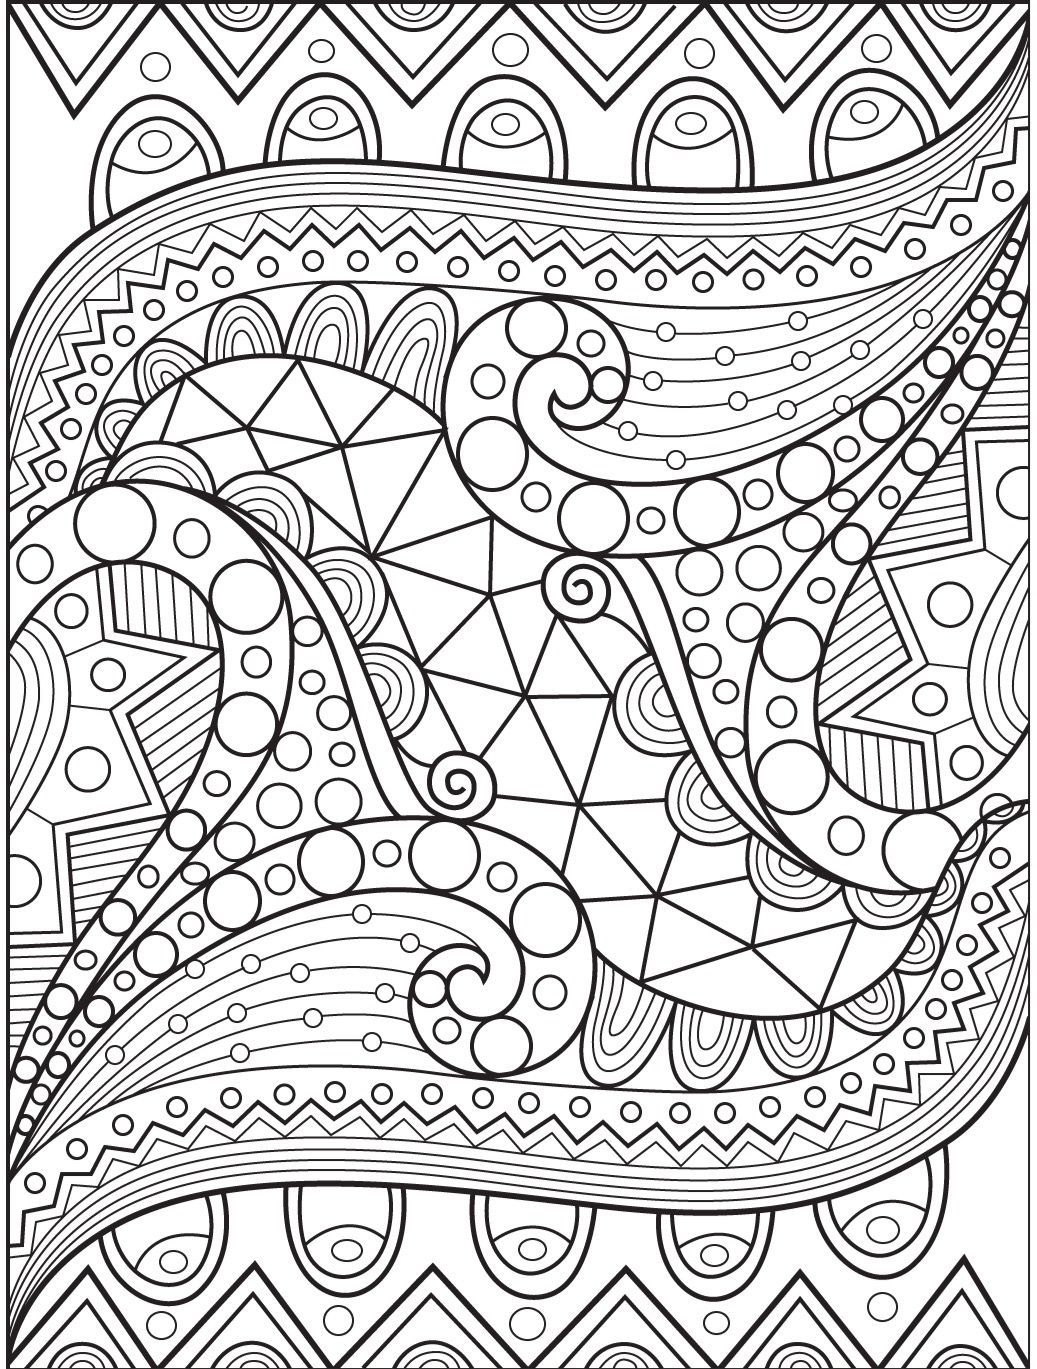 7 Coloring Pages For Adults Pdf Abstract Downloadable In 2020